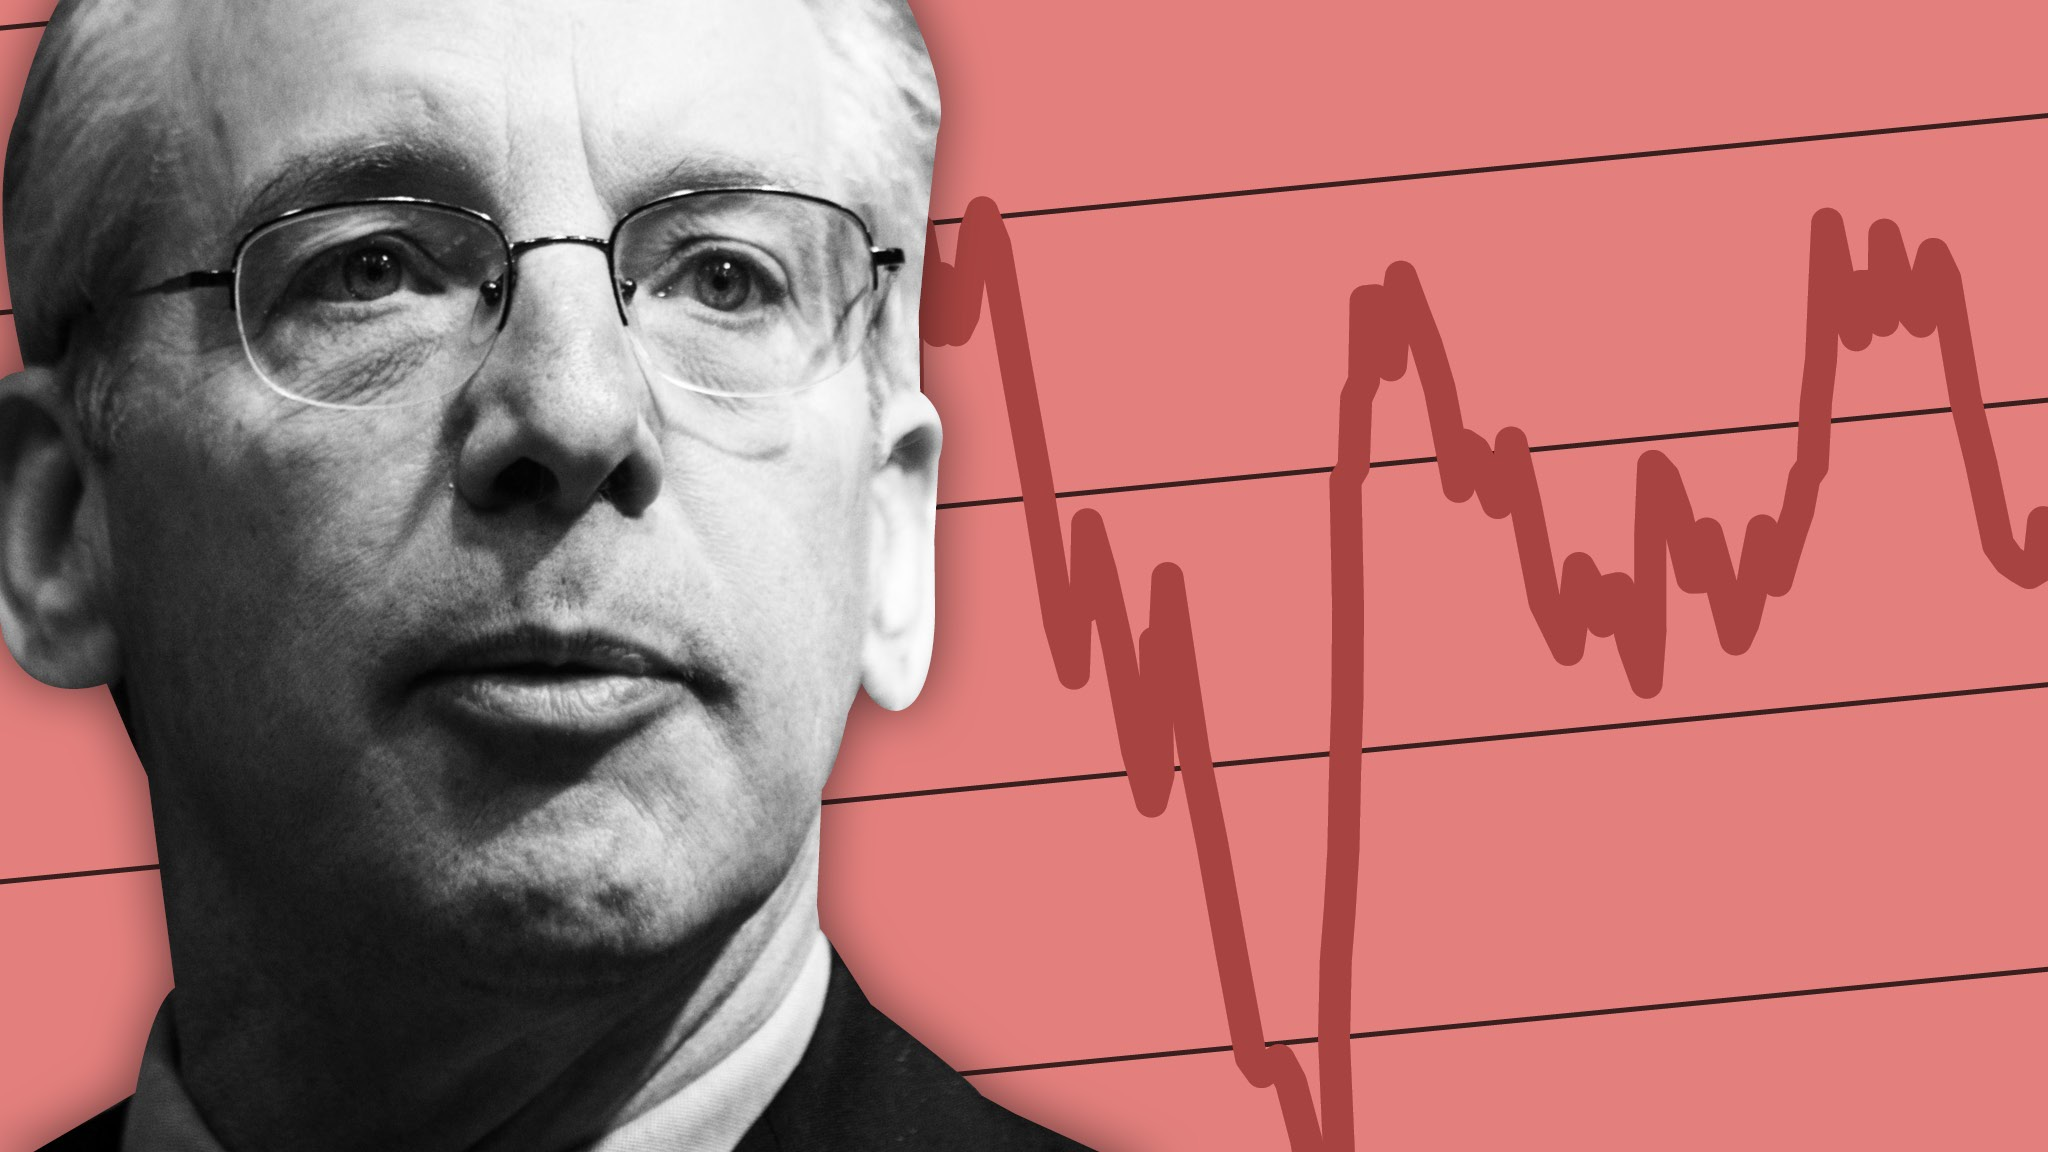 Fed's Dudley backs review of 2% inflation target